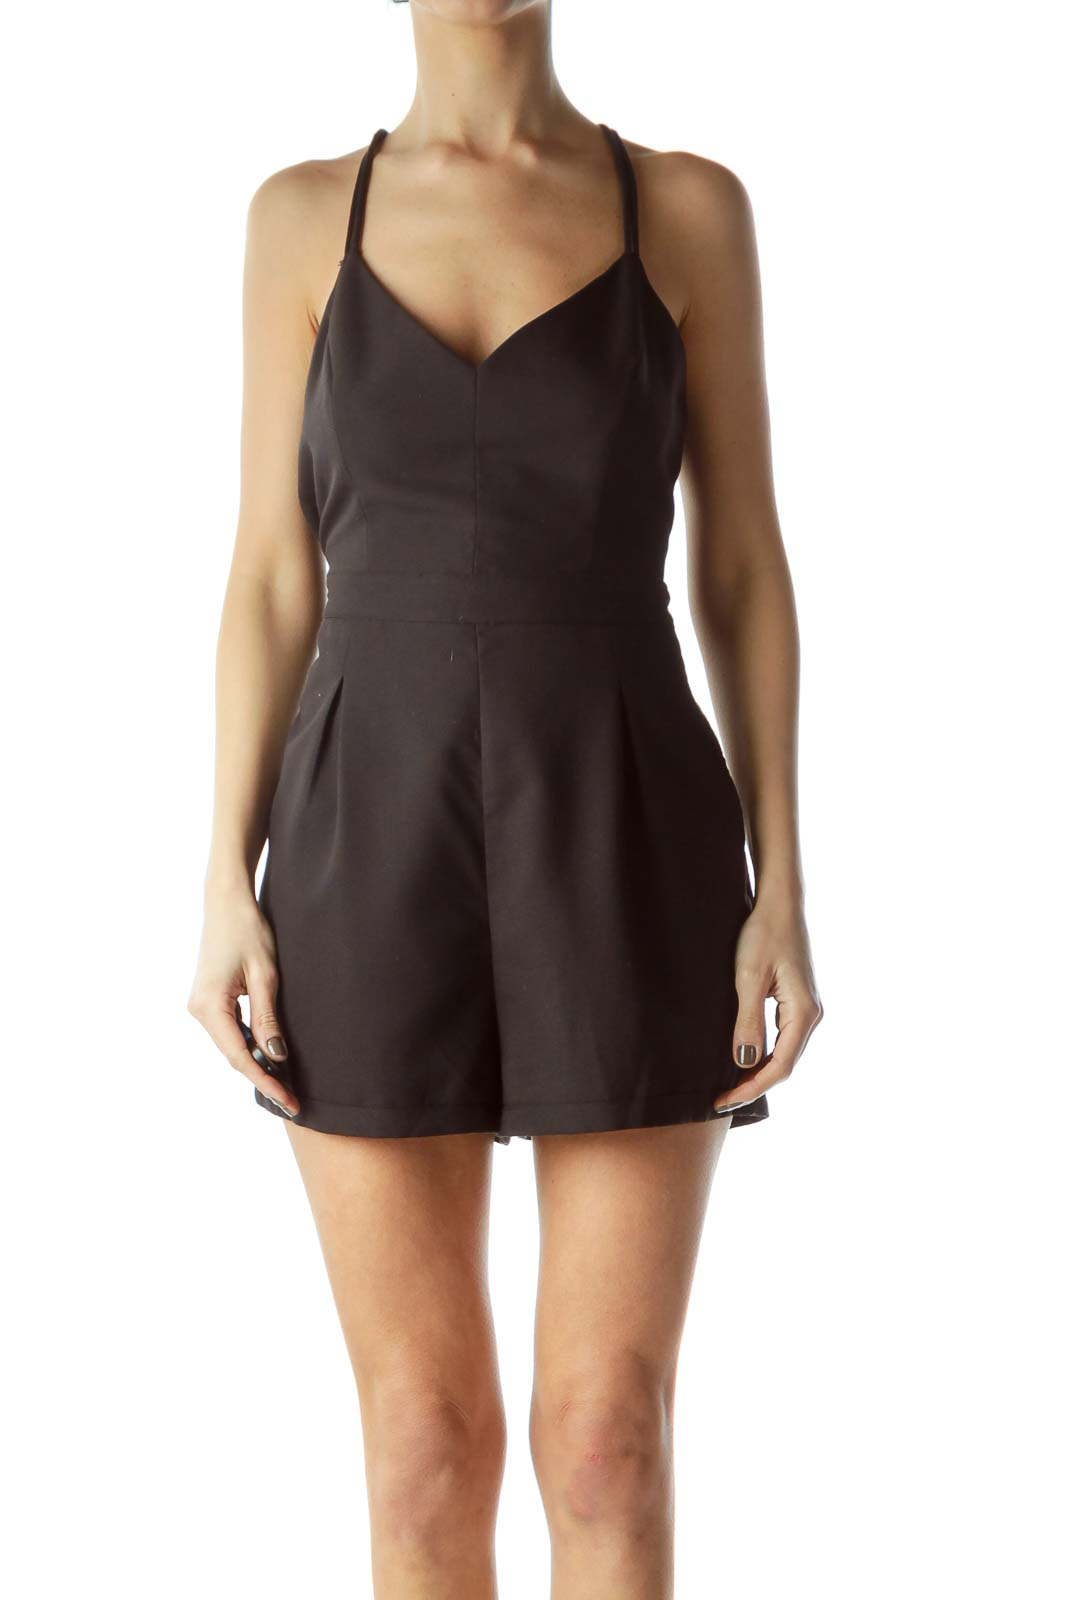 Black Spaghetti Strap Pocketed Romper